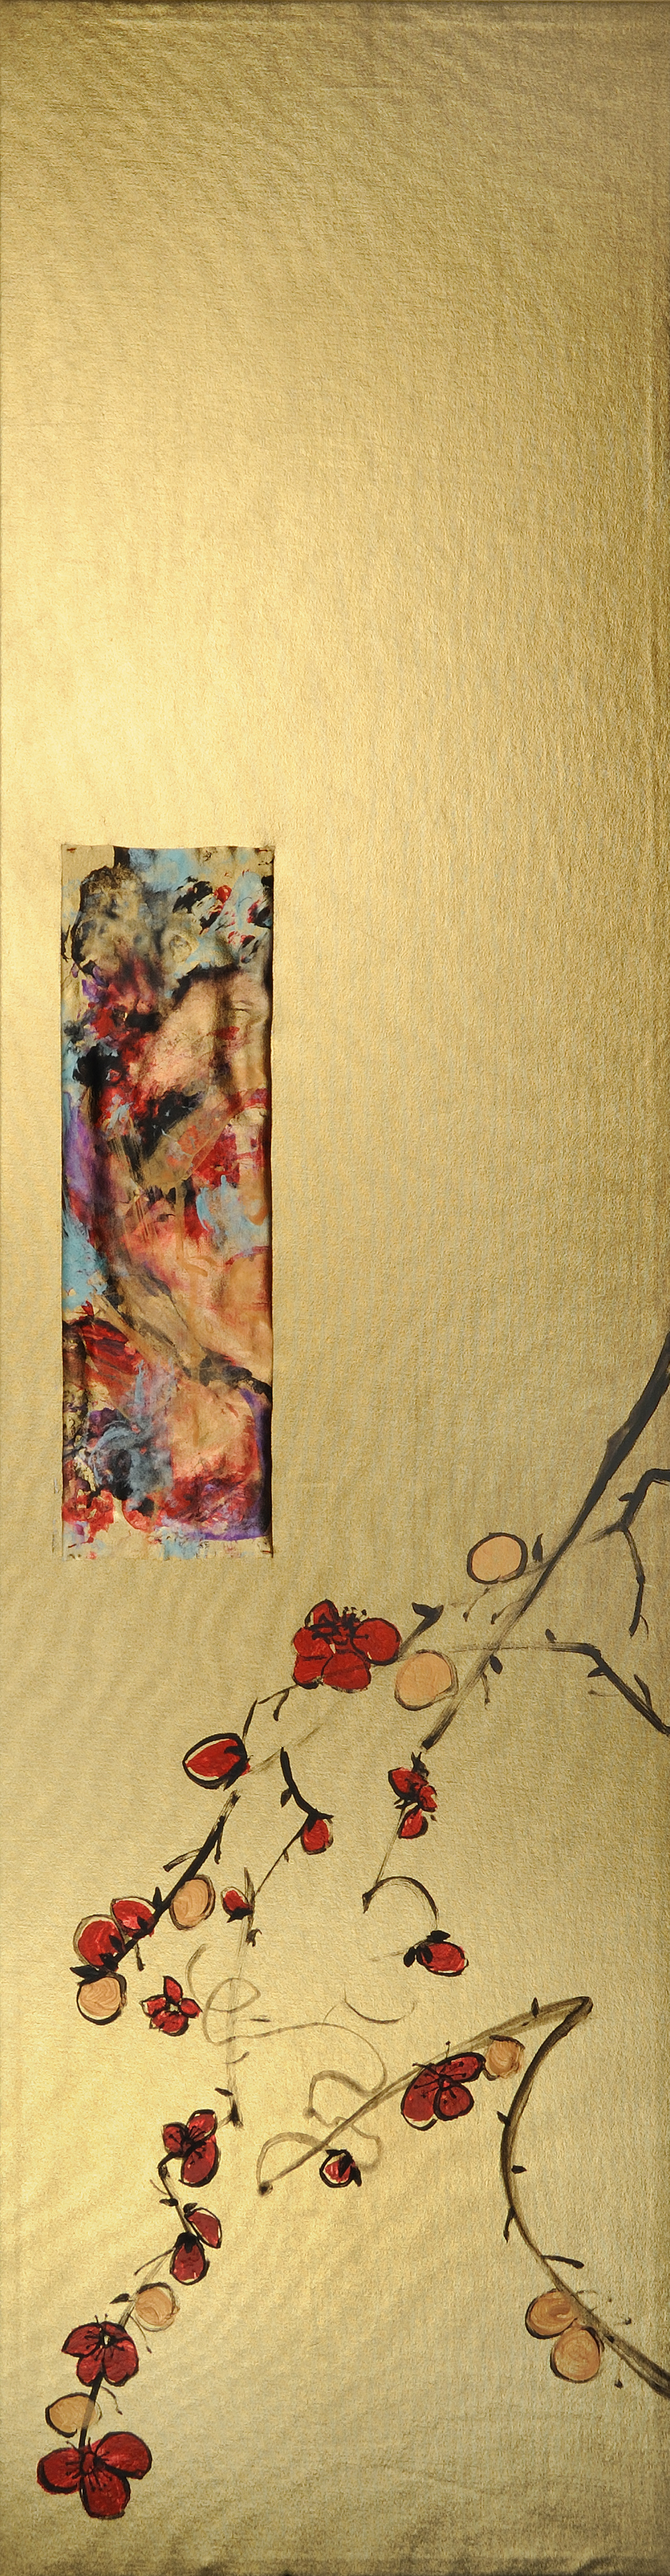 "Rama Ciruela (Plum Branch)   Acrylic on gold lamé  38"" x 10""  $700   Click here to Inquire."